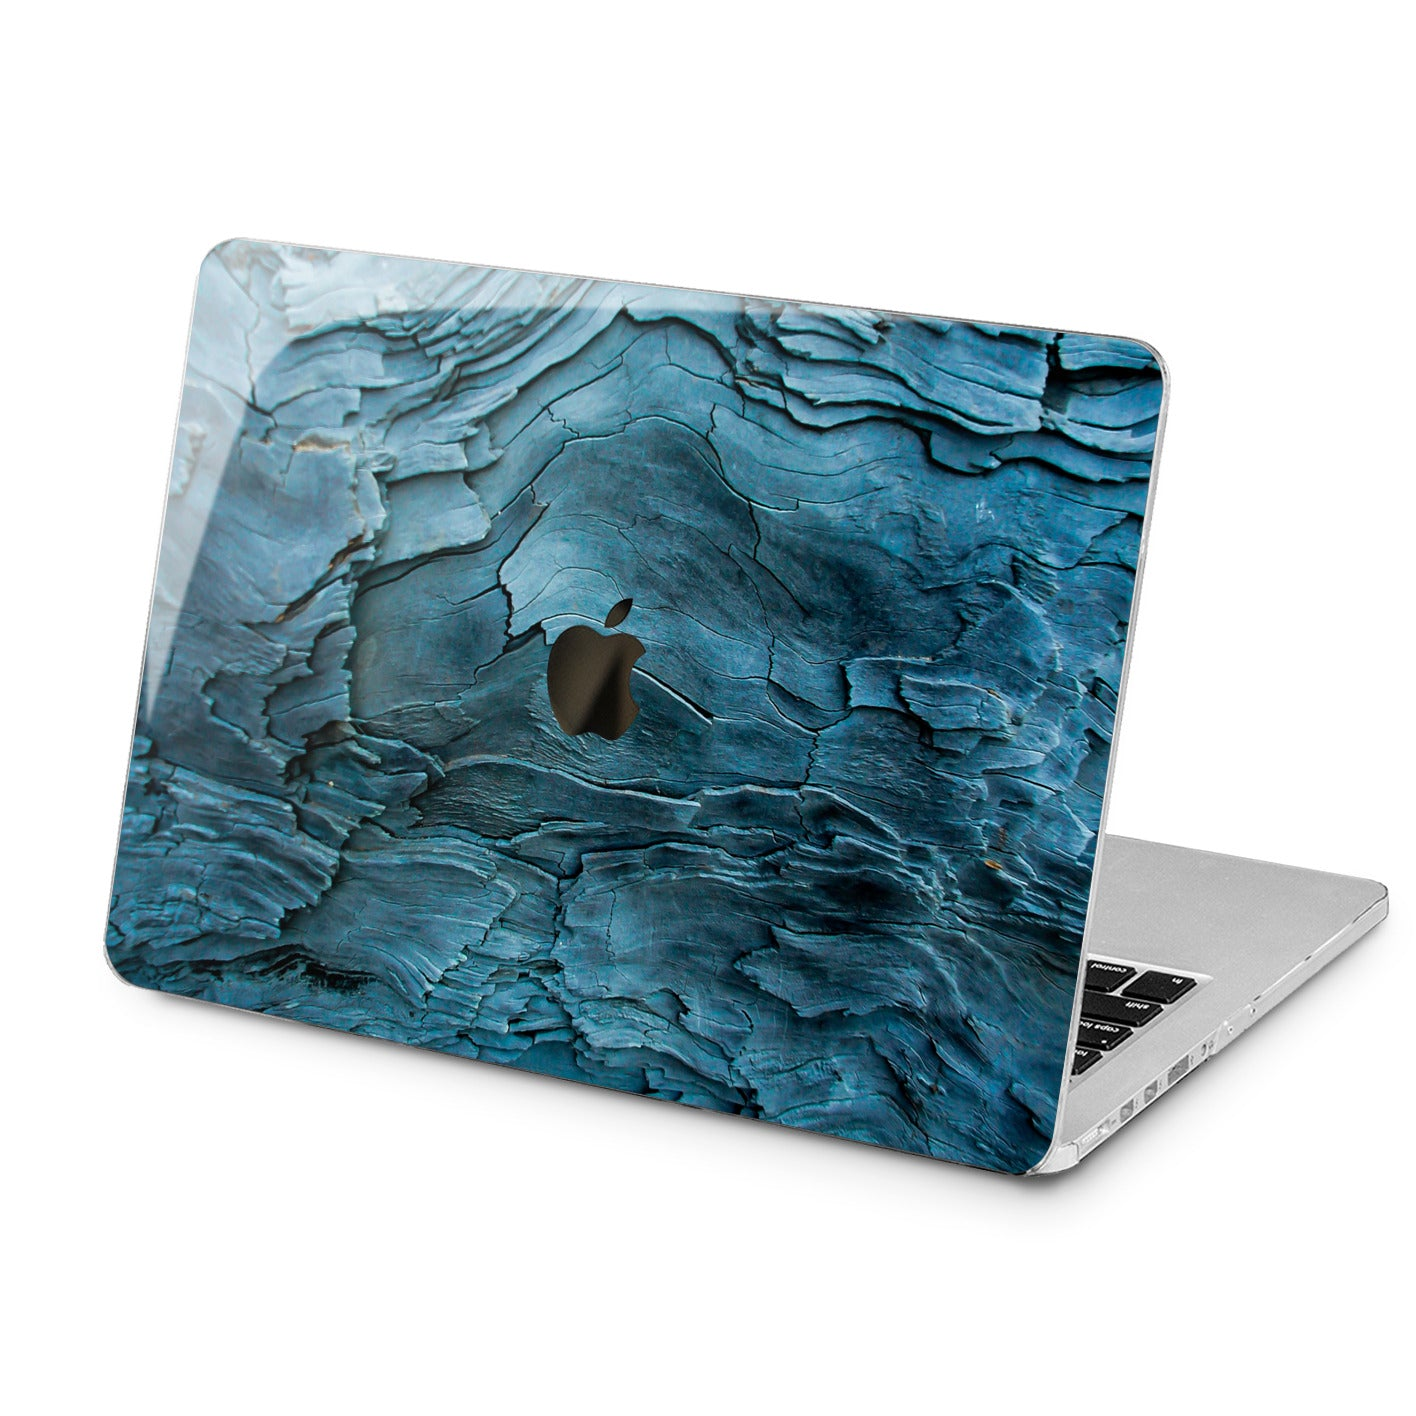 Lex Altern Lex Altern Blue Wood Case for your Laptop Apple Macbook.